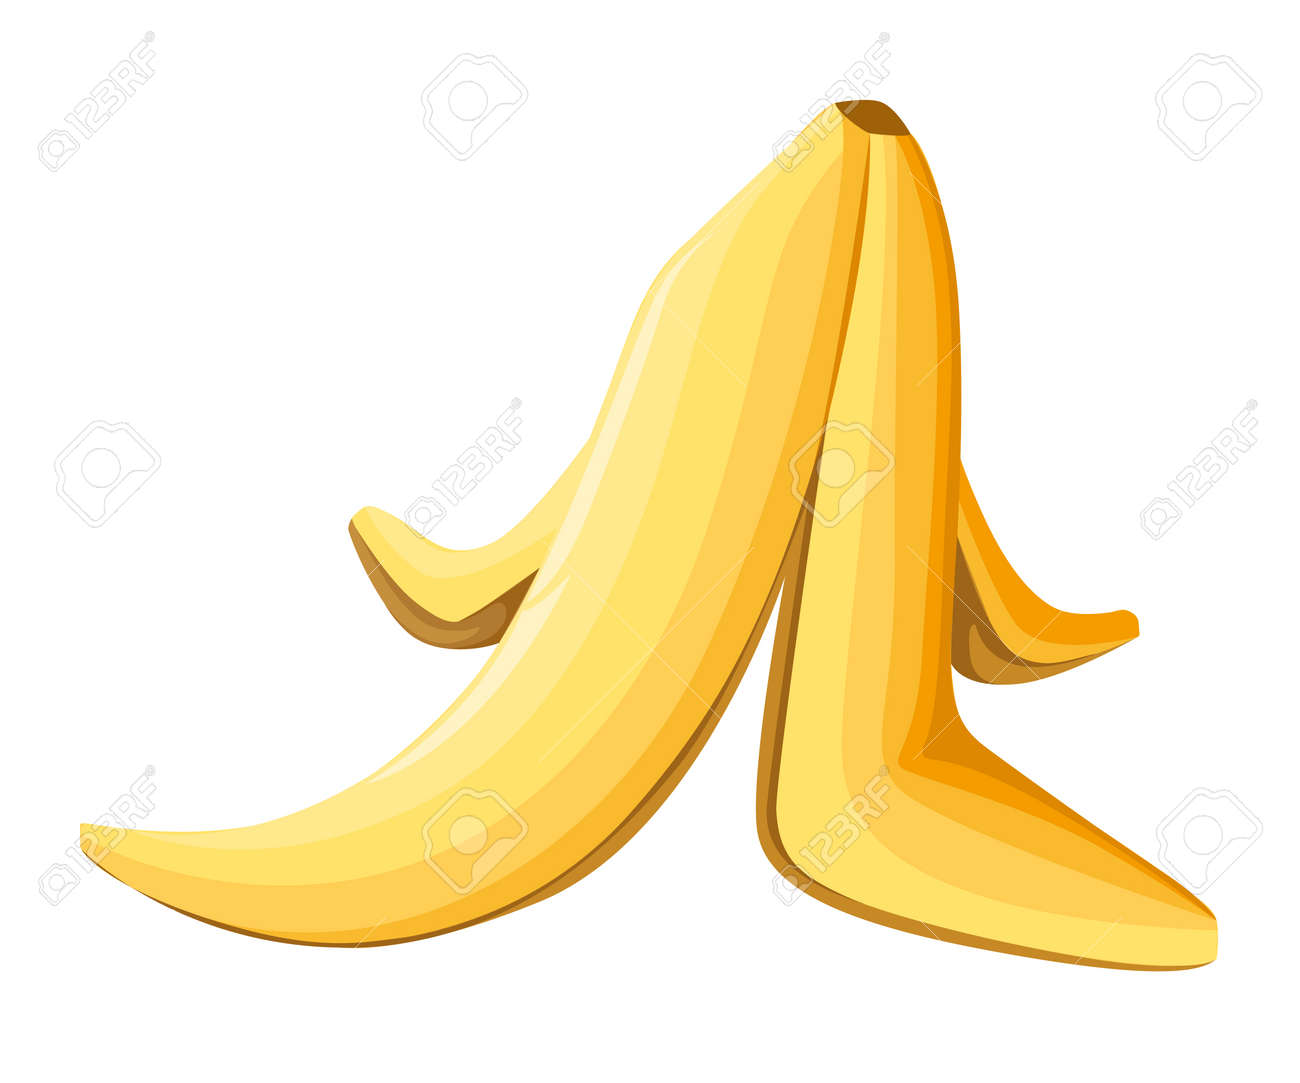 Banana peel on a white background. Vector illustration. on white background Web site page and mobile app design for game. - 90087596